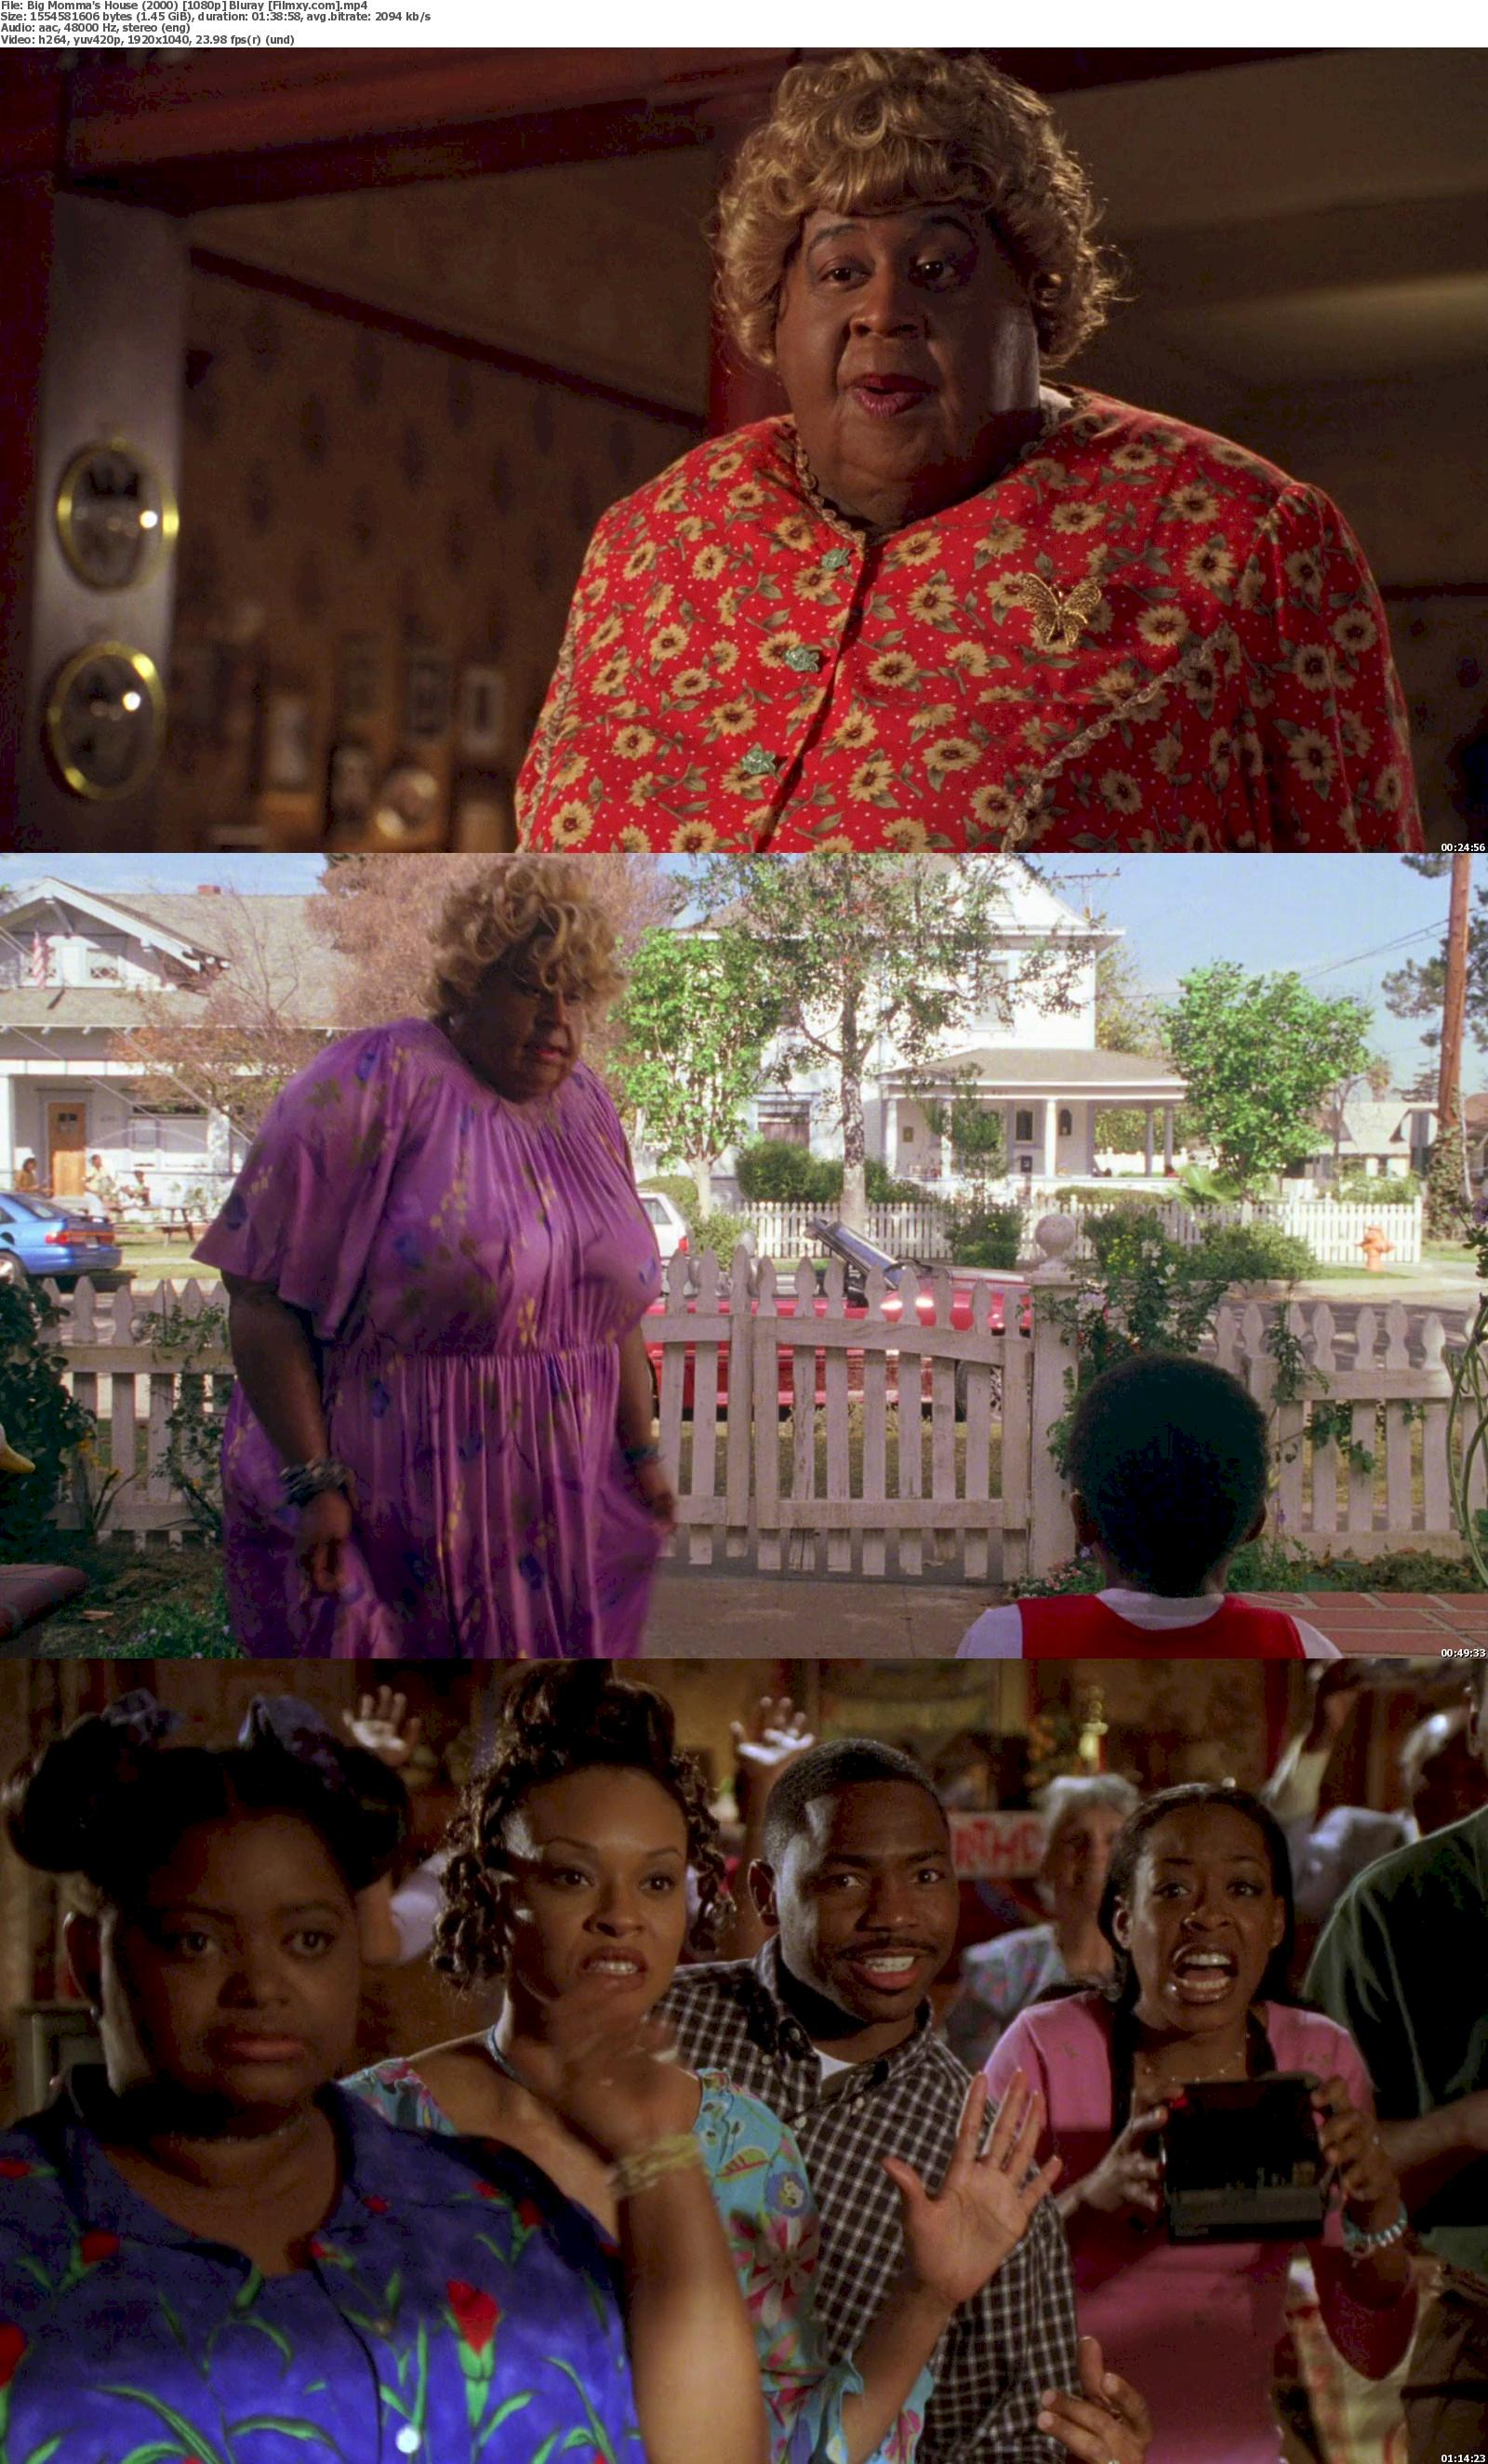 Big Momma's House (2000) [720p & 1080p] Bluray Free Movie Watch Online & Download 1080p Screenshot